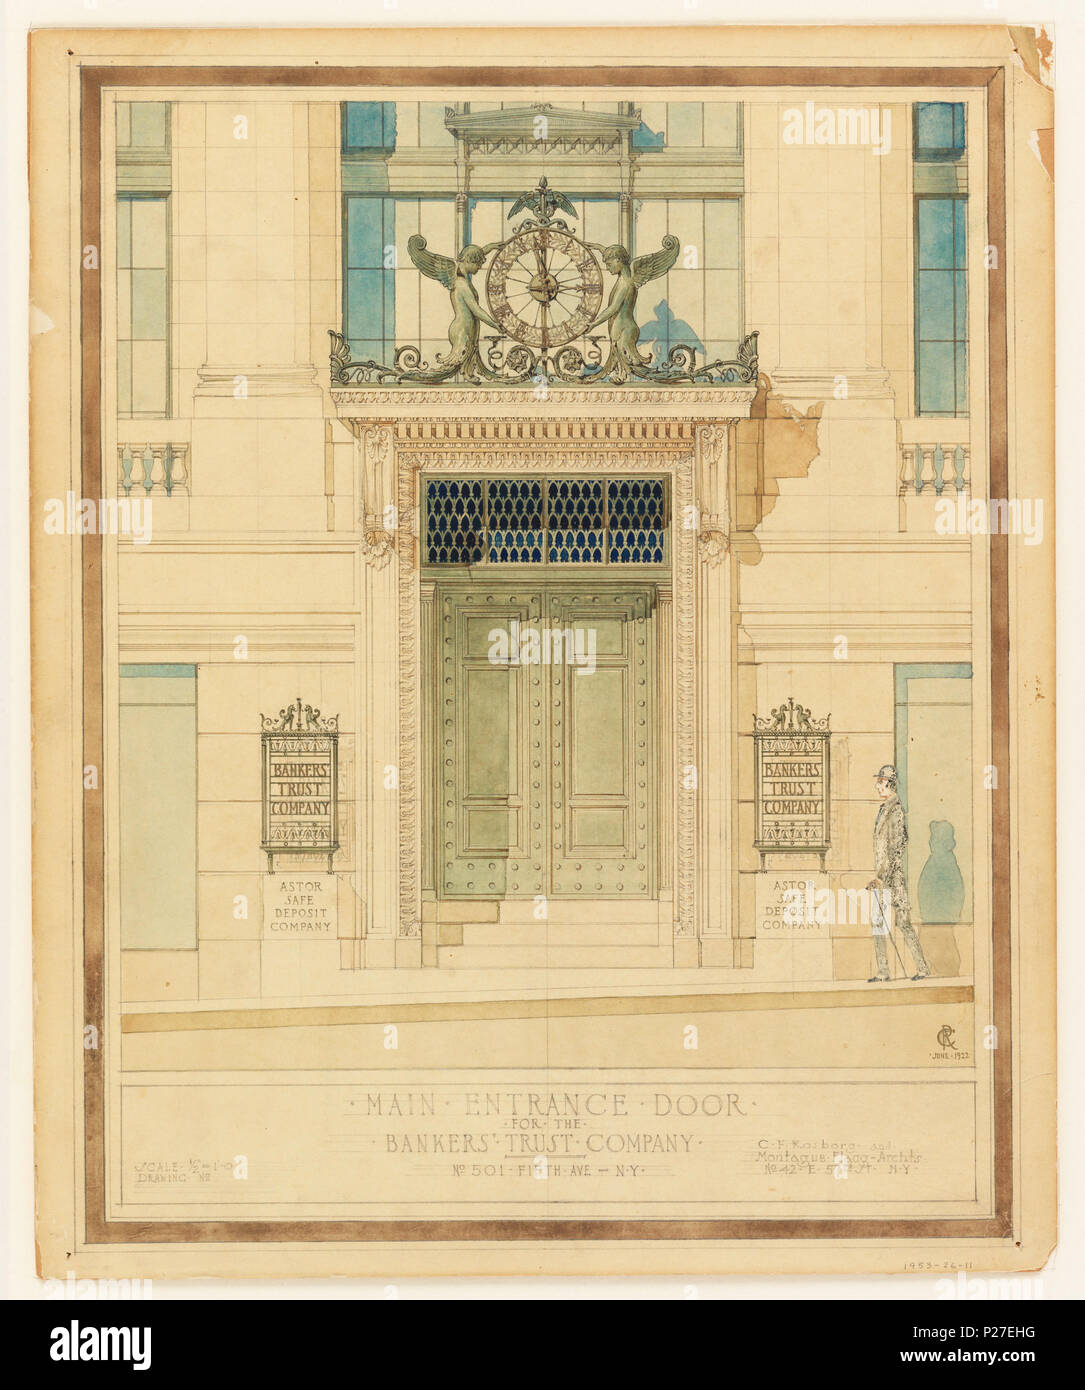 English Drawing Design For Main Entrance Door For The Bankers